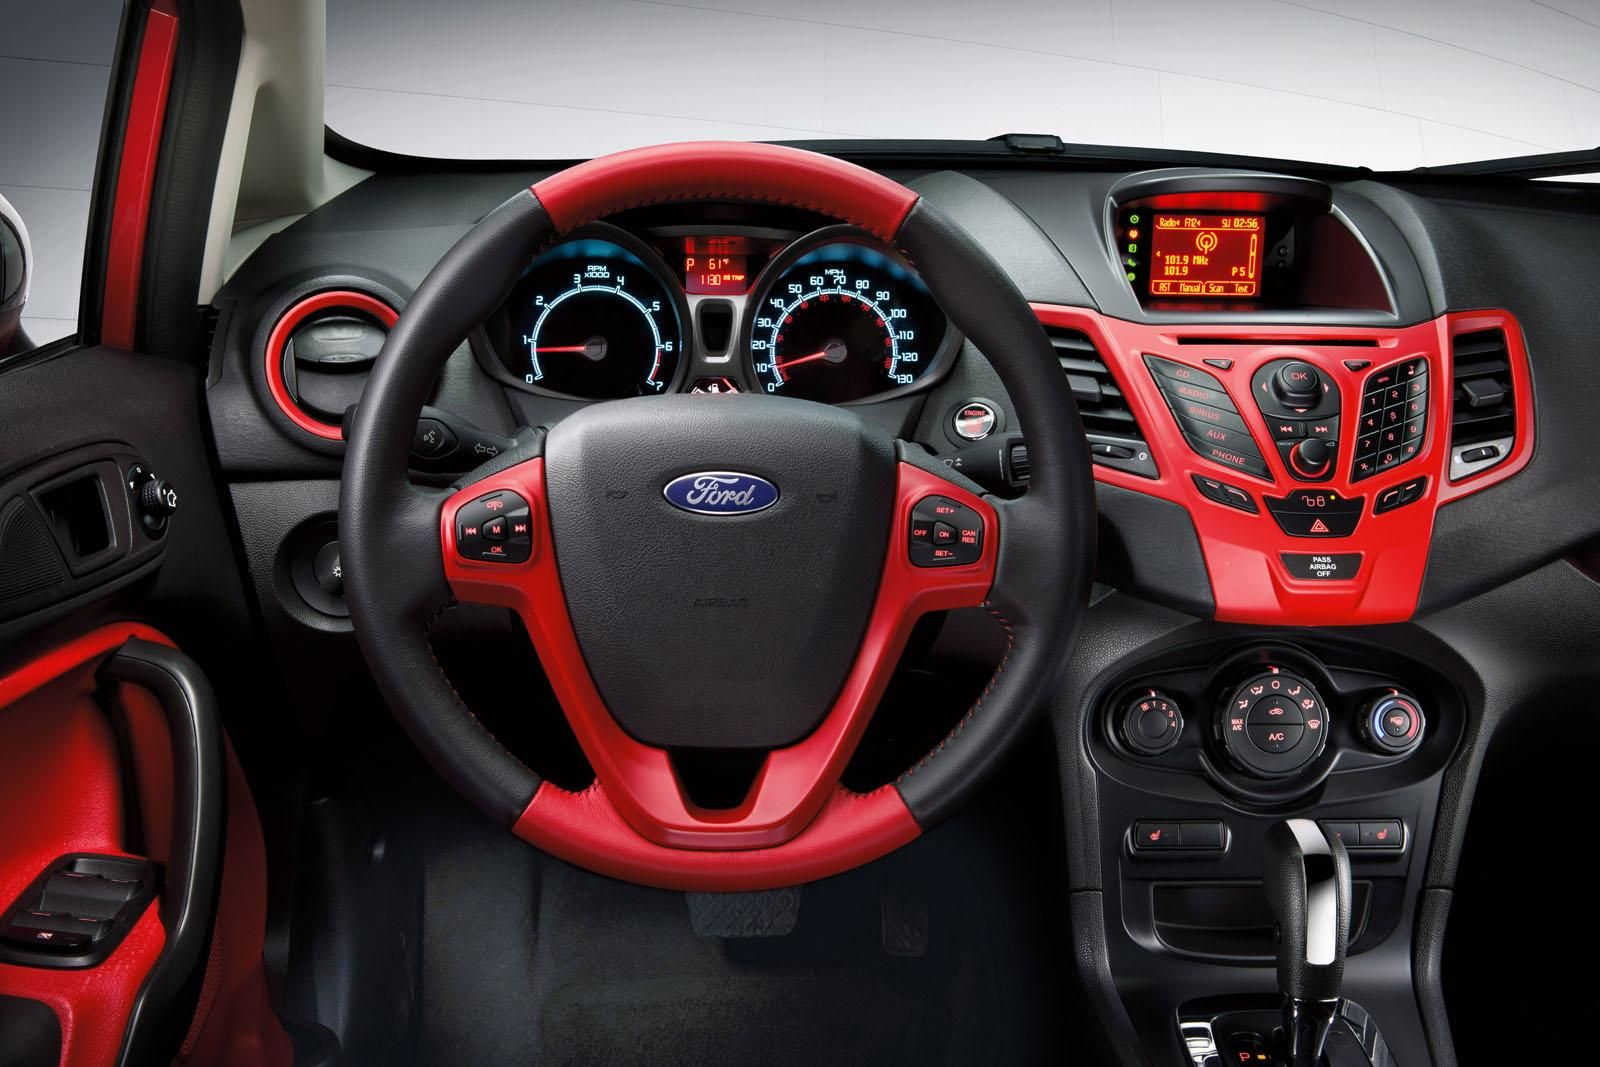 2012 Ford Fiesta Dashboard Google Search Ford Fiesta Ford